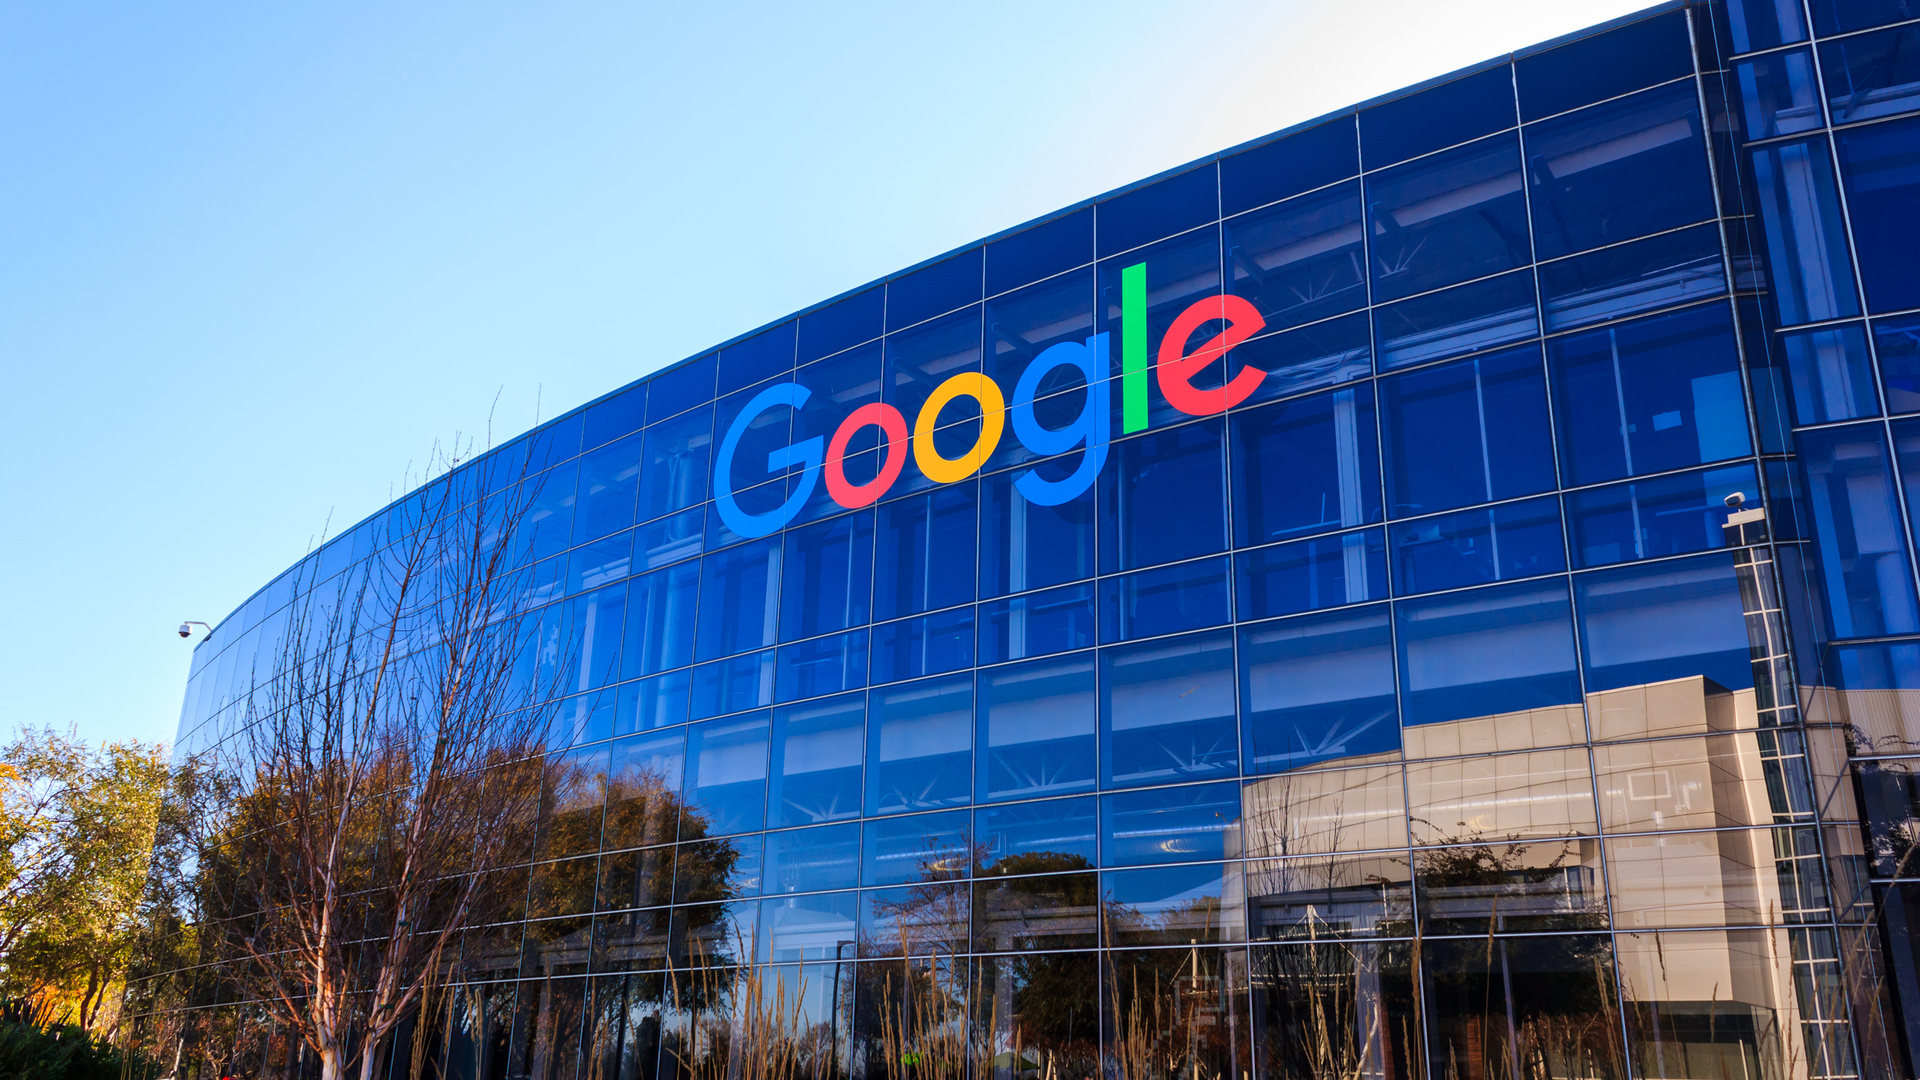 Google will spend billions on data centers and offices in the US this year